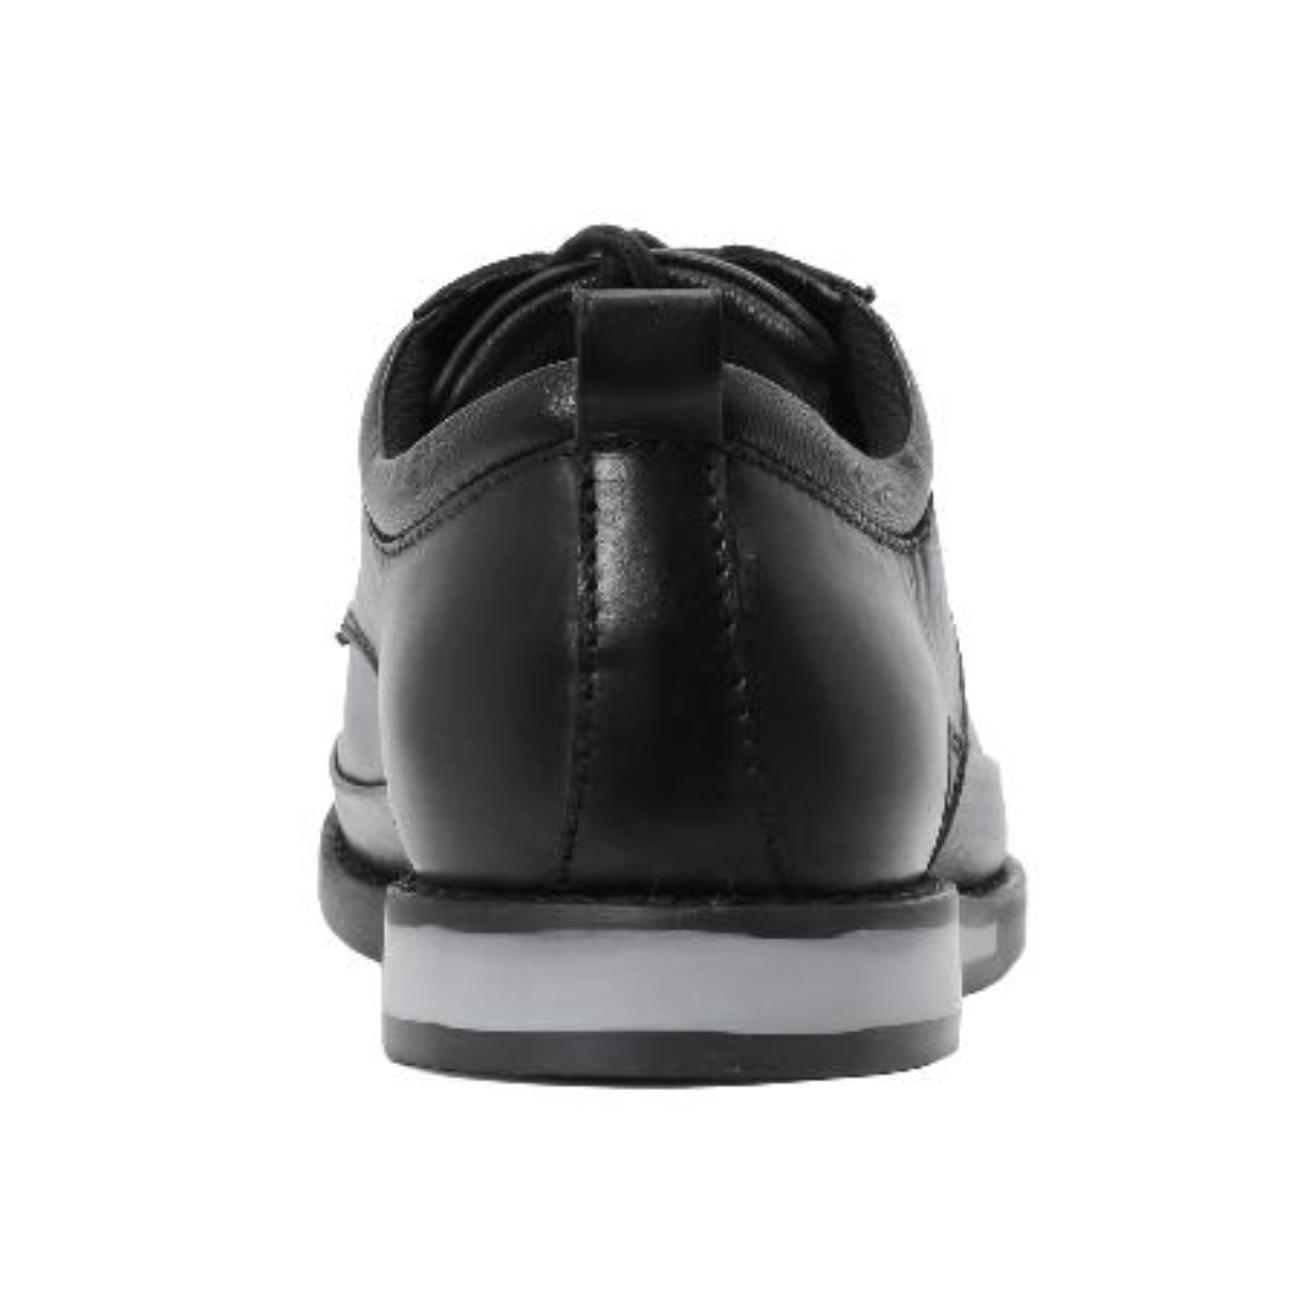 black formal shoes for men from behind